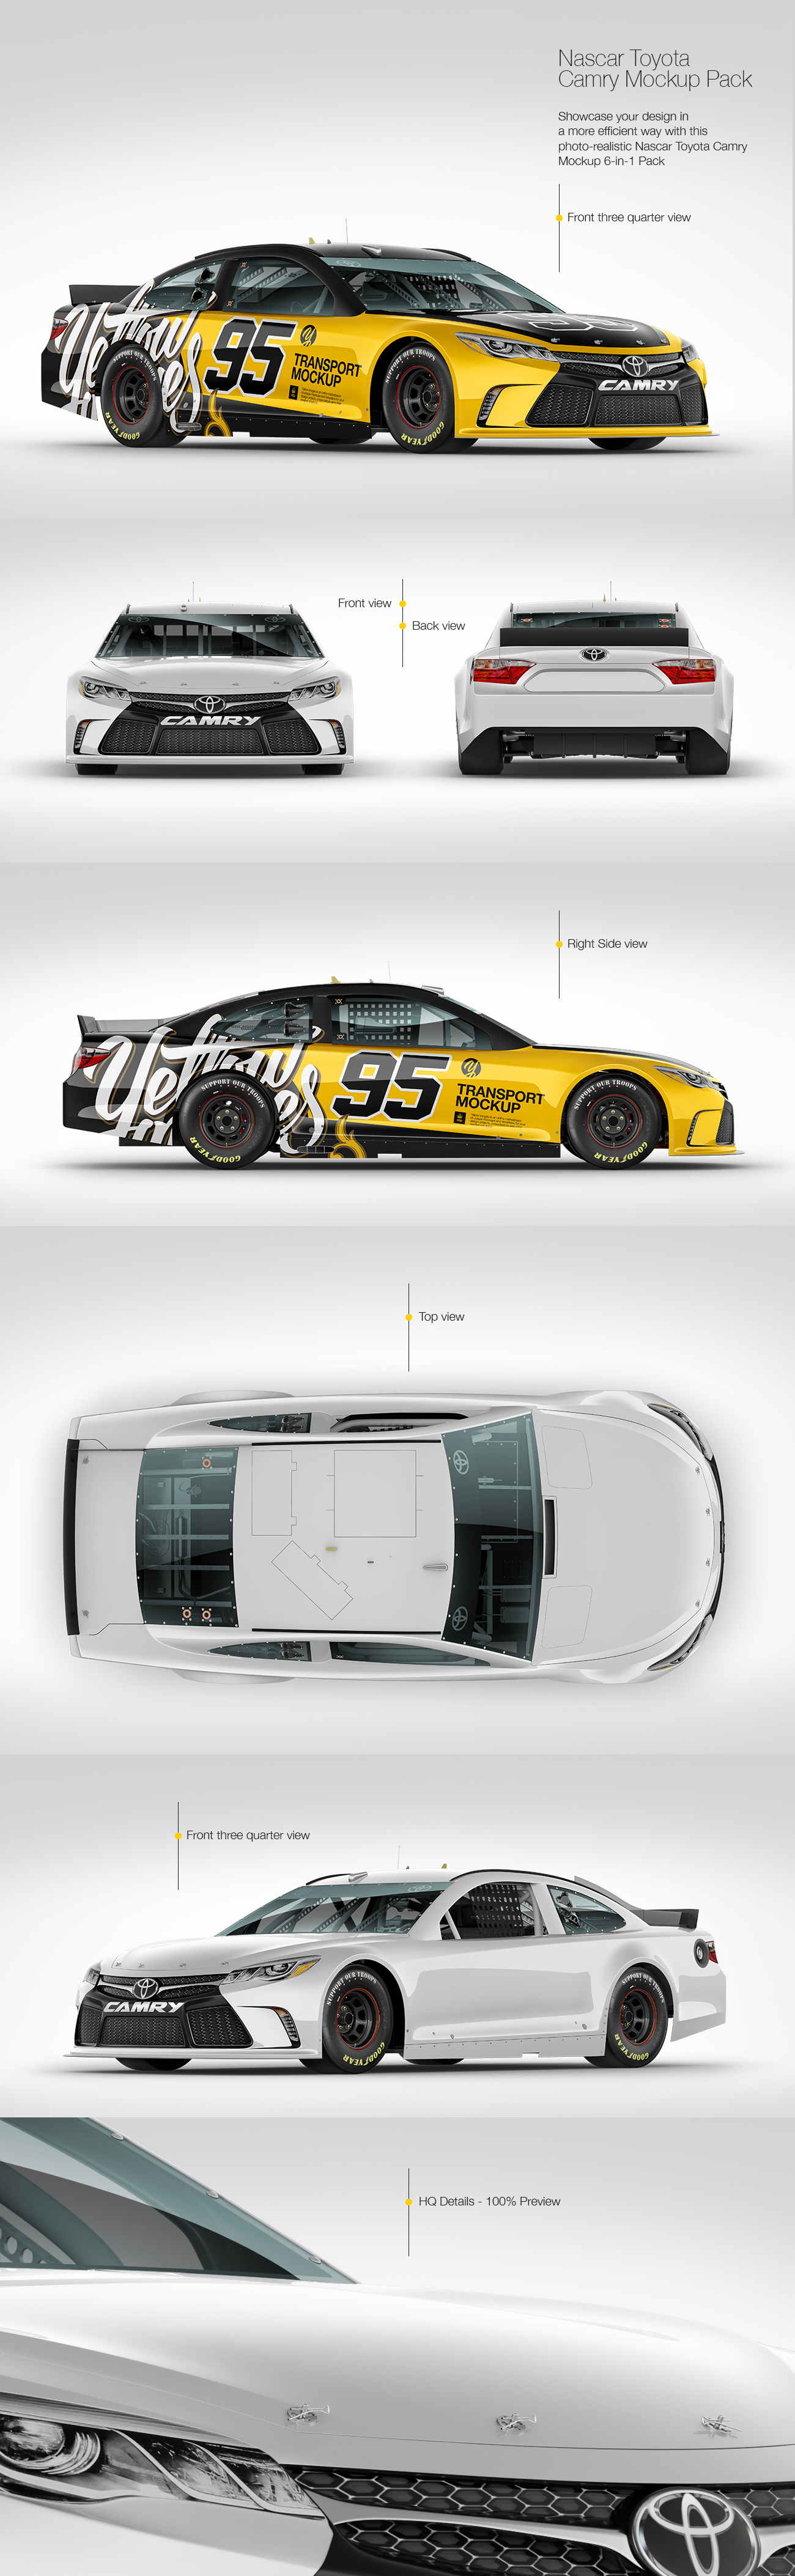 Nascar Camry Mockup Pack in Handpicked Sets of Vehicles on